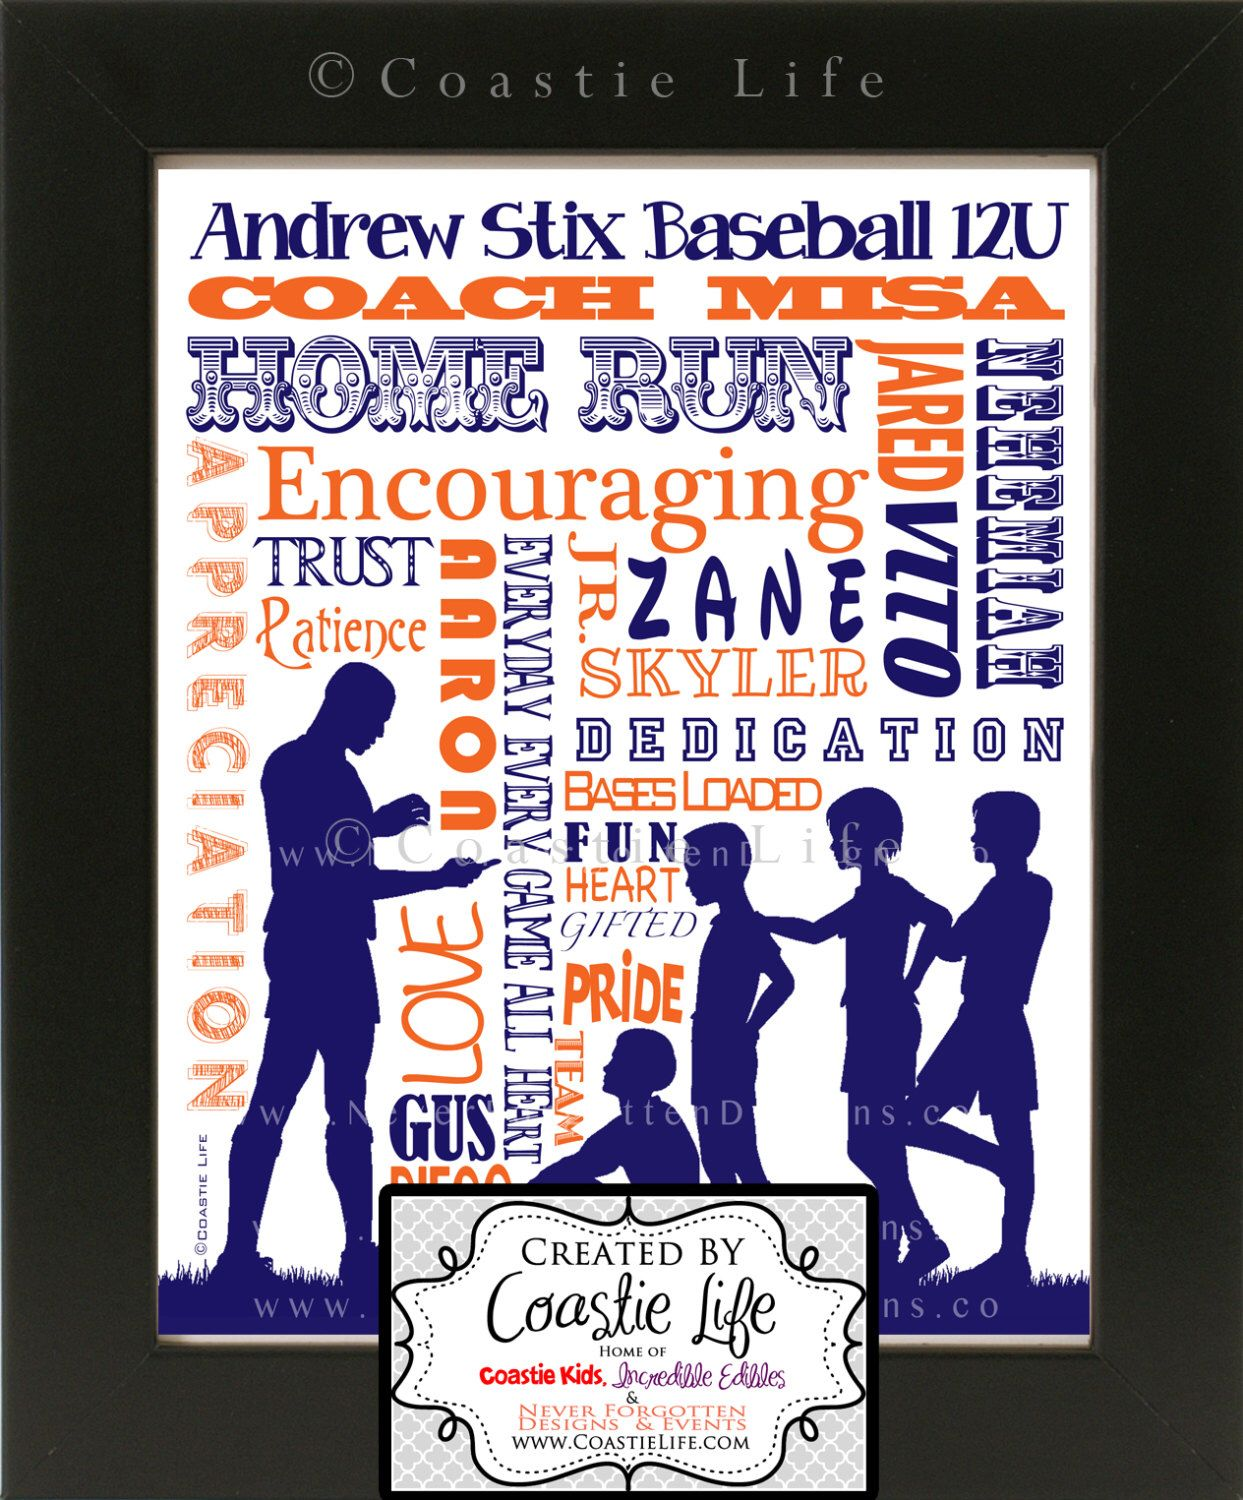 Customized Word Art For Football Rugby Baseball Soccer Coach Great Gift For End Of Season From The Tea Coach Gifts Coaching Youth Sports Football Coach Gifts